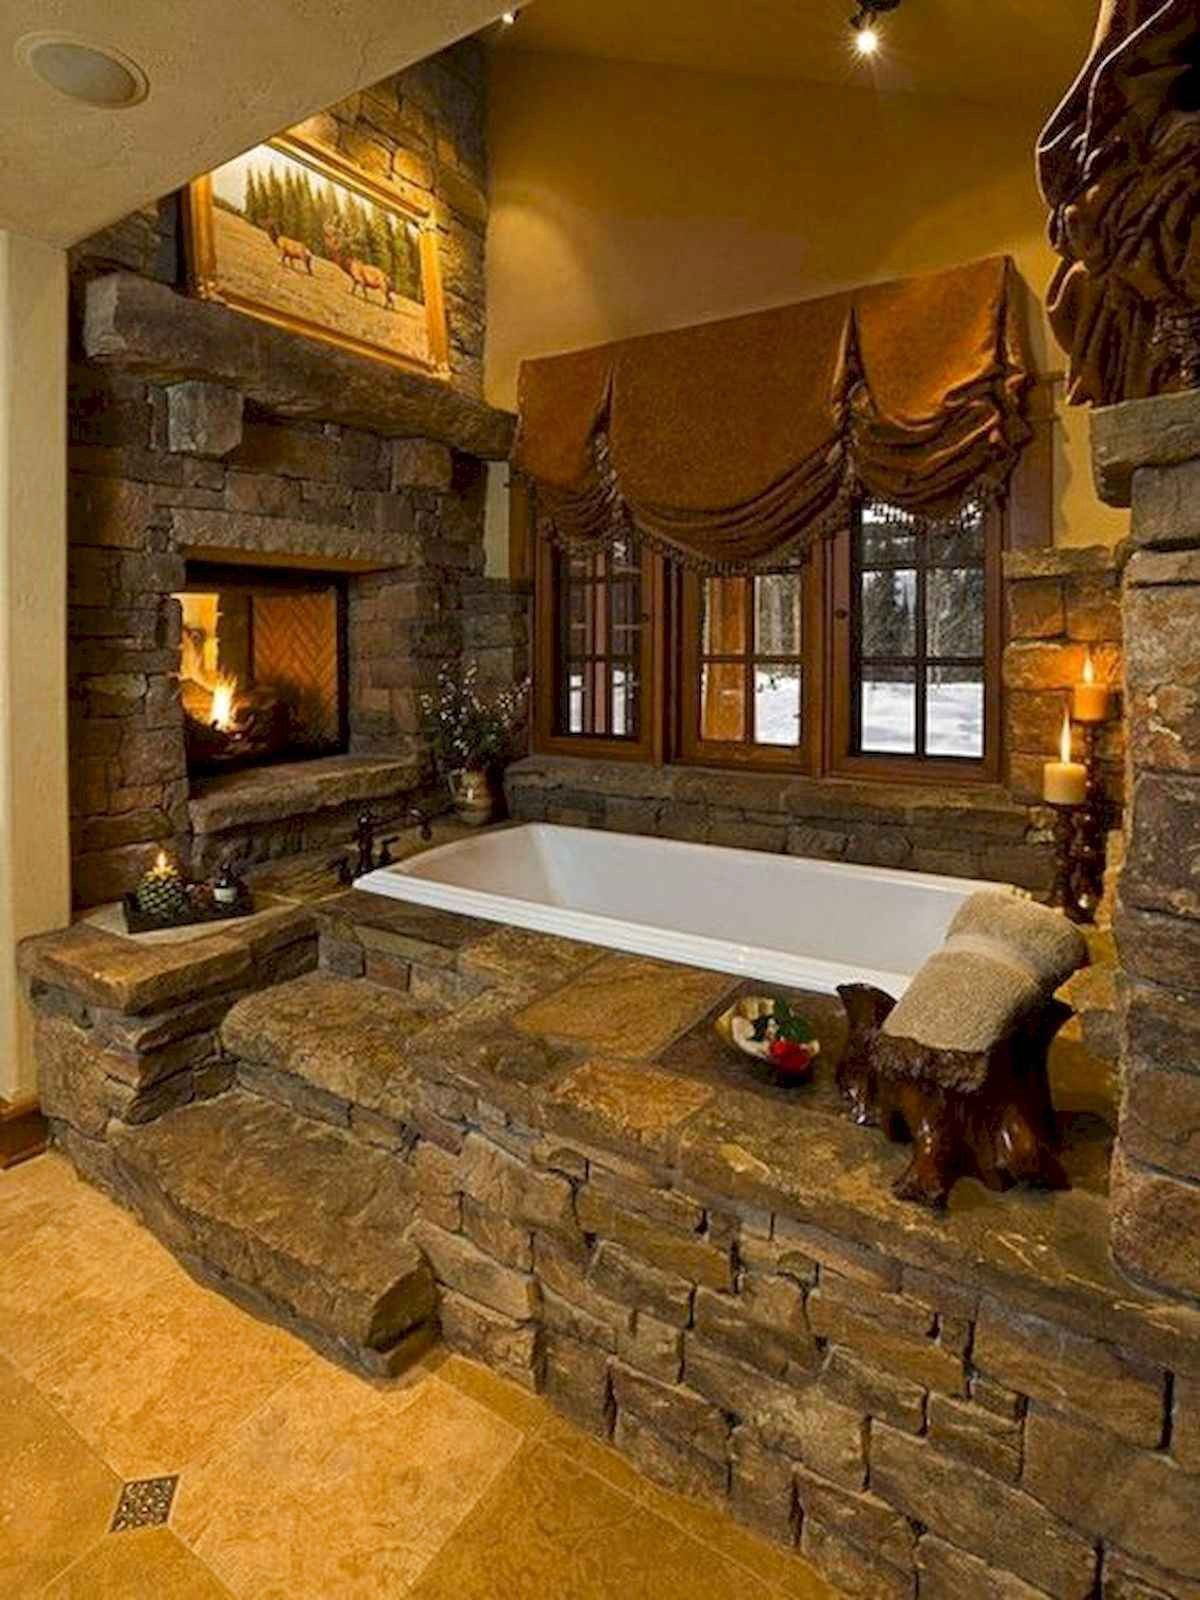 Favorite Log Cabin Homes Modern Design Ideas Frugal Living Rustic Bathroom Designs Rustic Bathrooms Master Bathroom Design